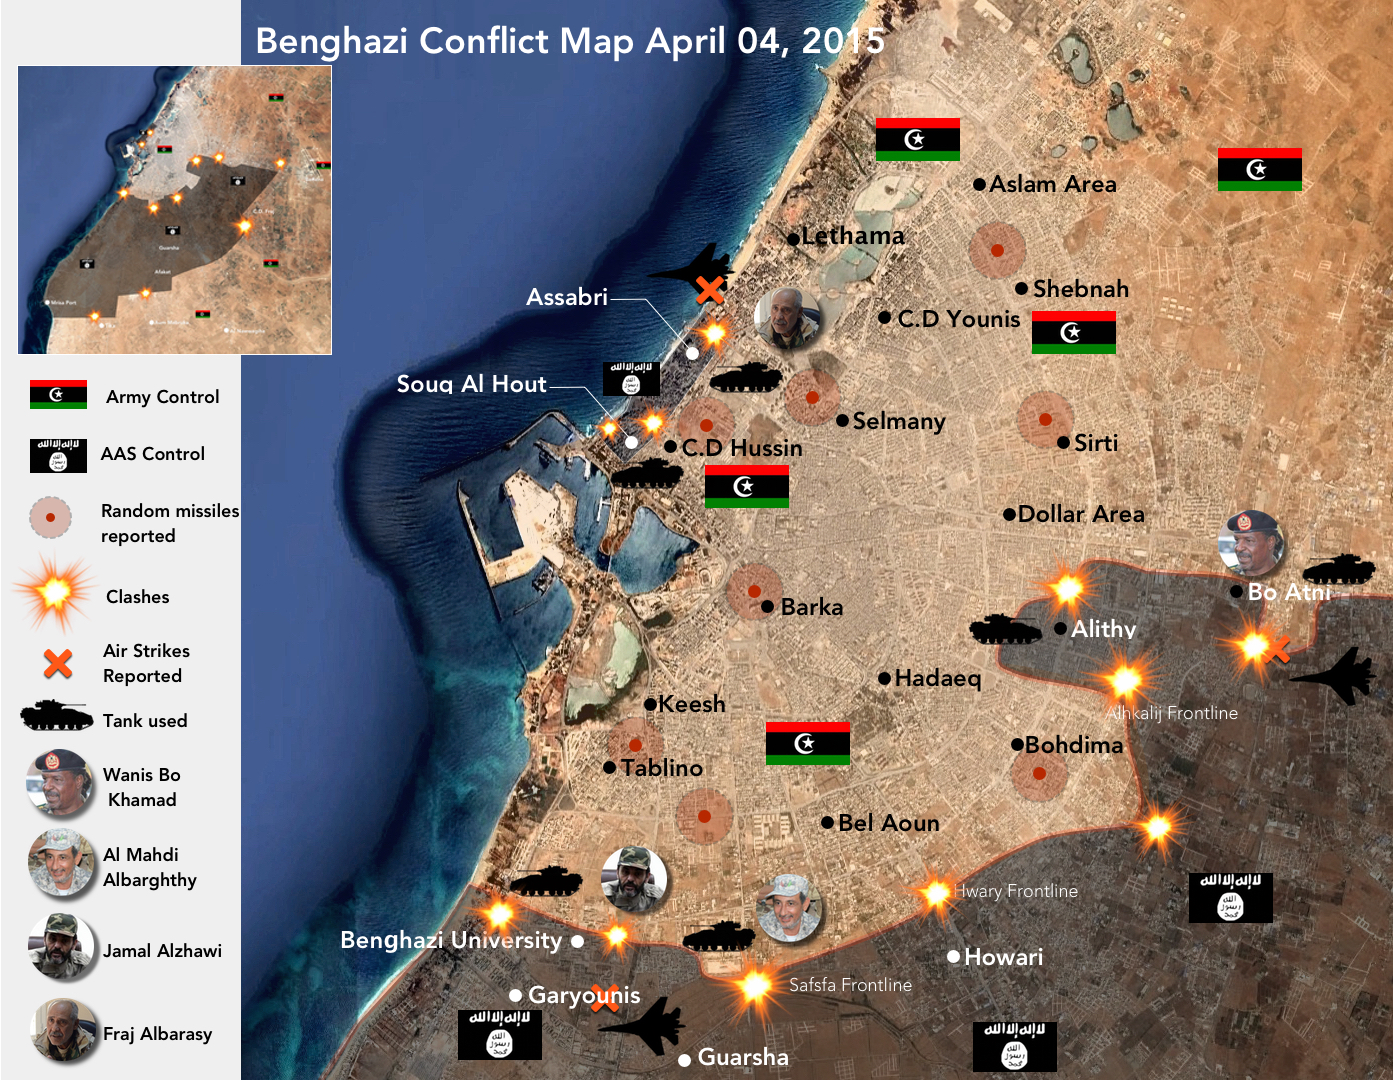 Benghazi conflict map April 4 2015 mutaz20042000 LibyanCrisis